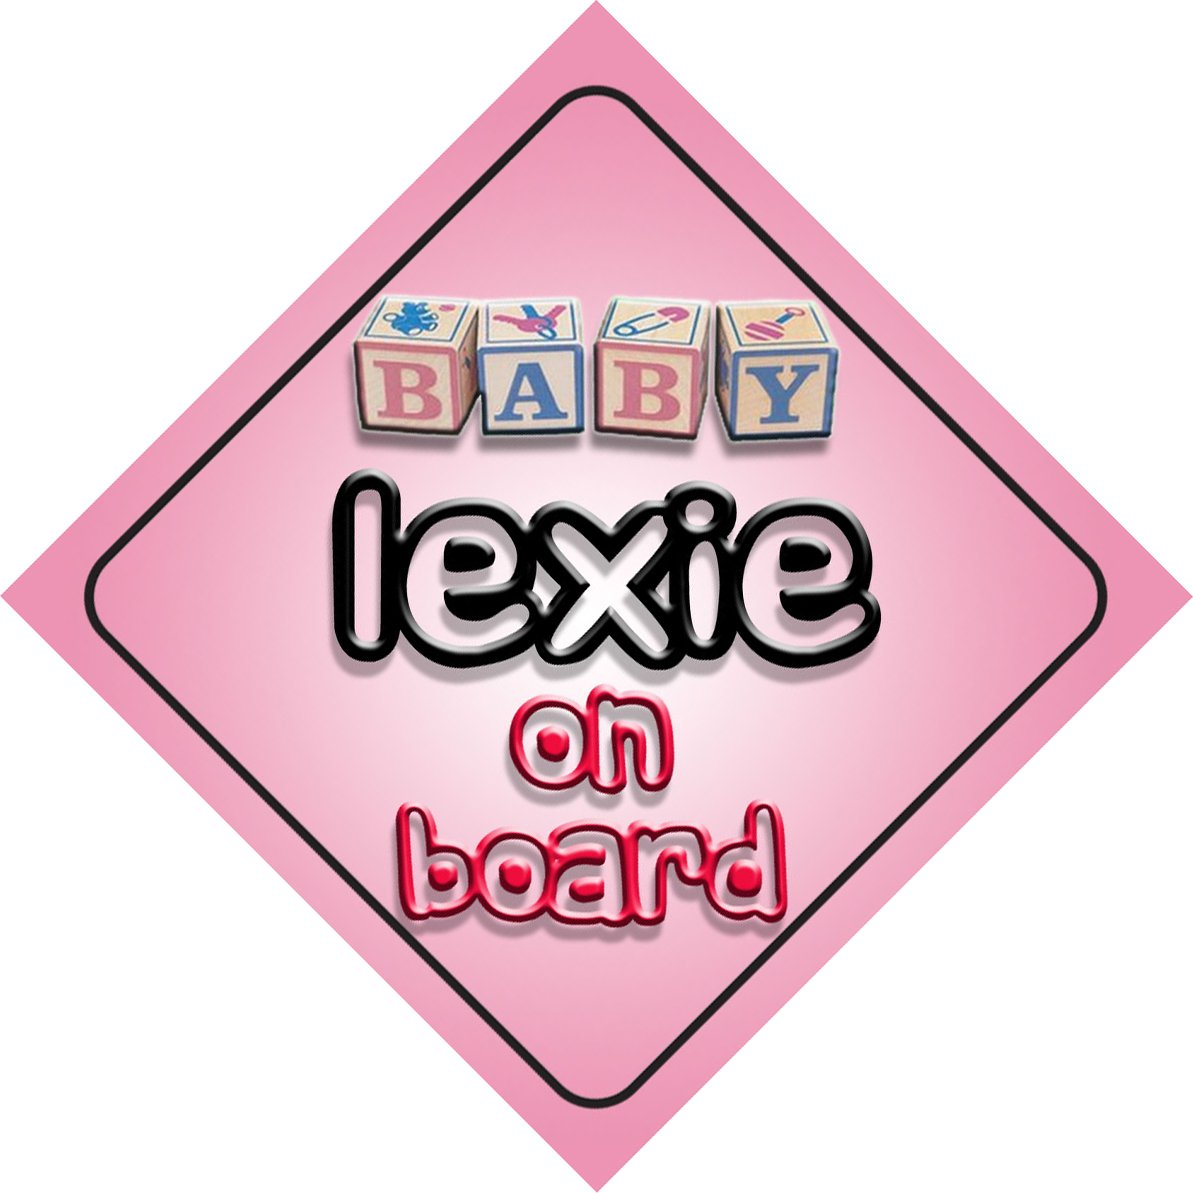 Baby Girl Lexie on board novelty car sign gift/present for new child/newborn baby by mybabyonboard UK   B008D1F5QC